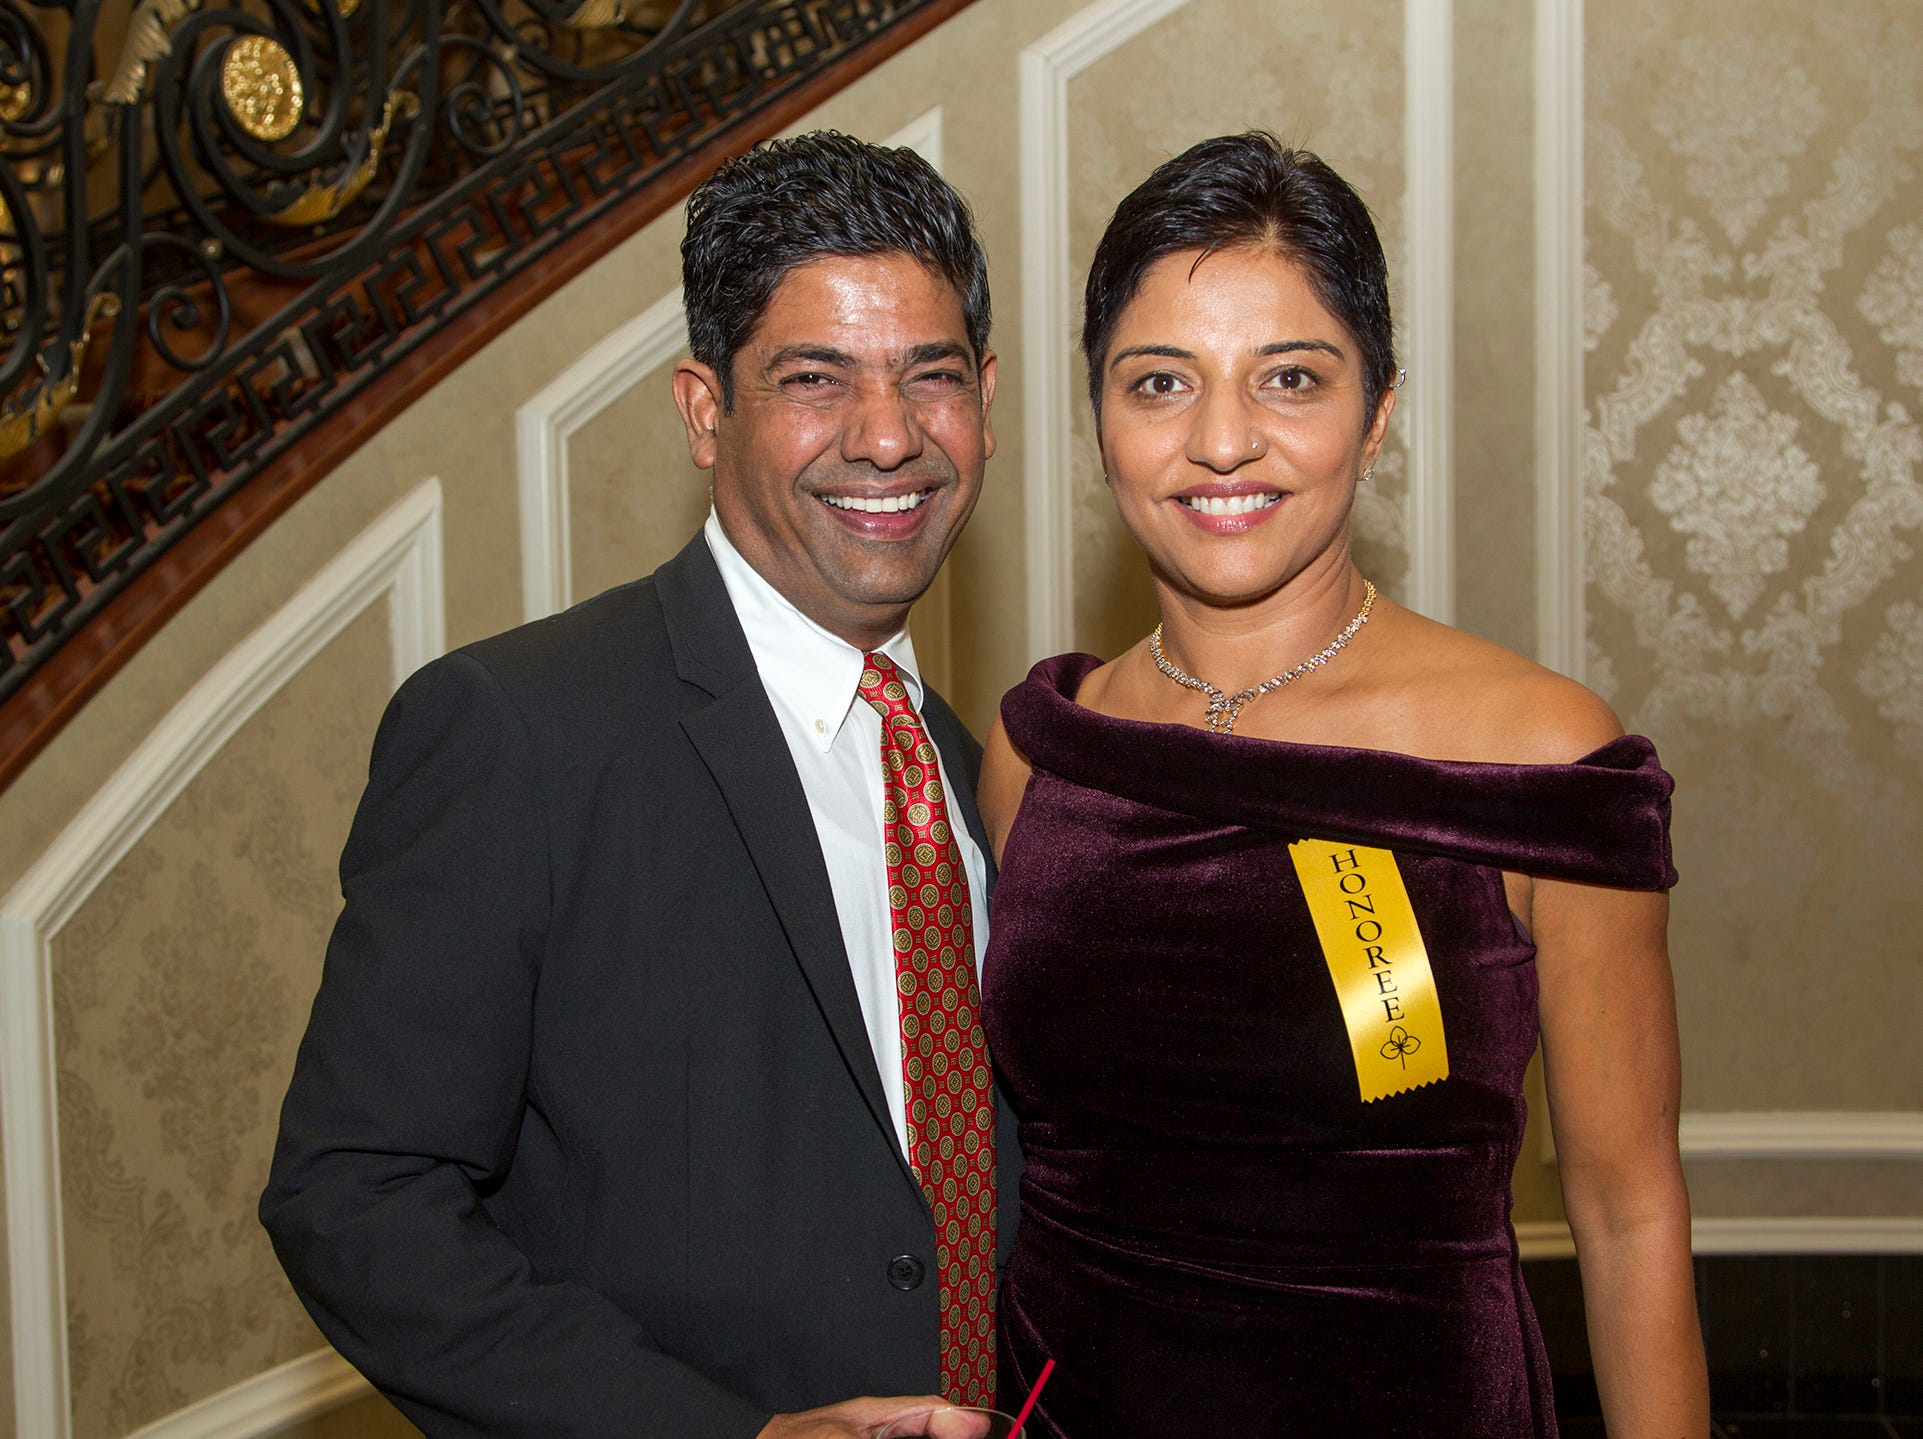 Dr. Dhingra and Dr. Reddy. Christian Health Care Center held its ' A Celebration of Excellence' gala at the Venetian in Garfield.  10/17/2018